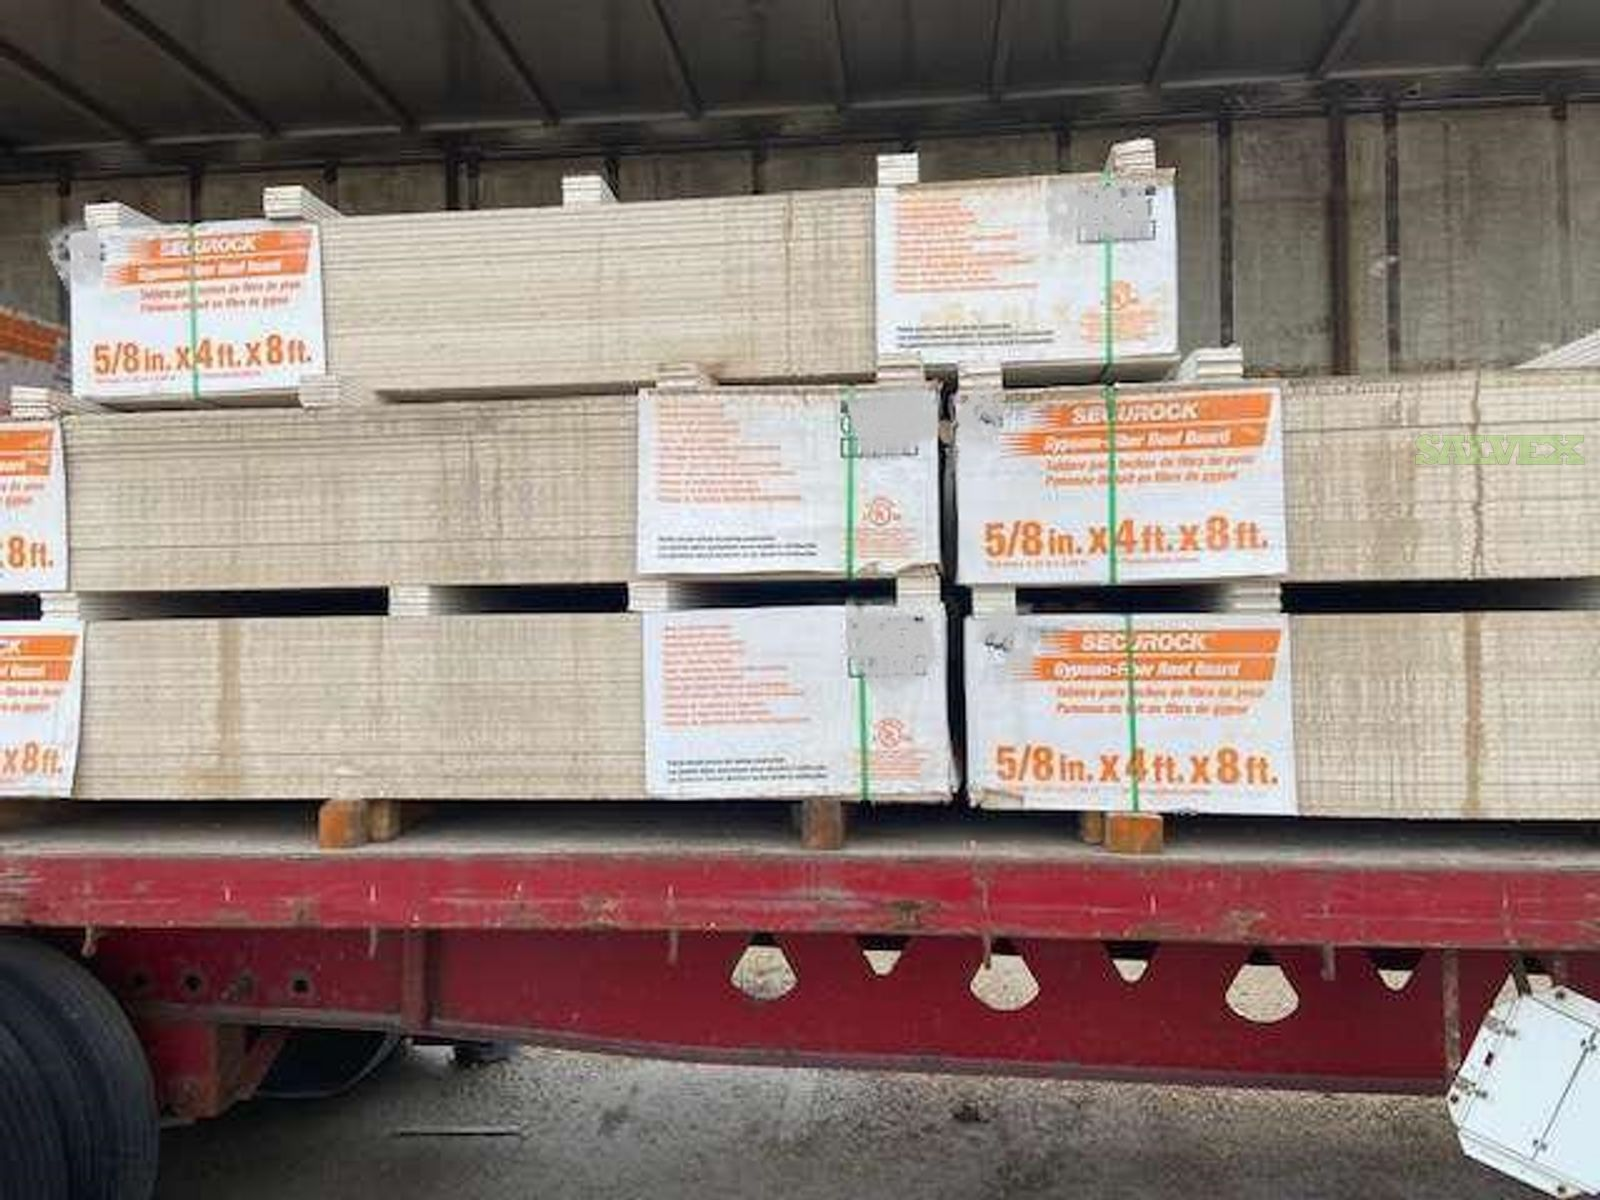 Securock 5/8in x 4ft x 8ft Gypsum-Fiber Roof Board (18 Packages) in MB, Canada